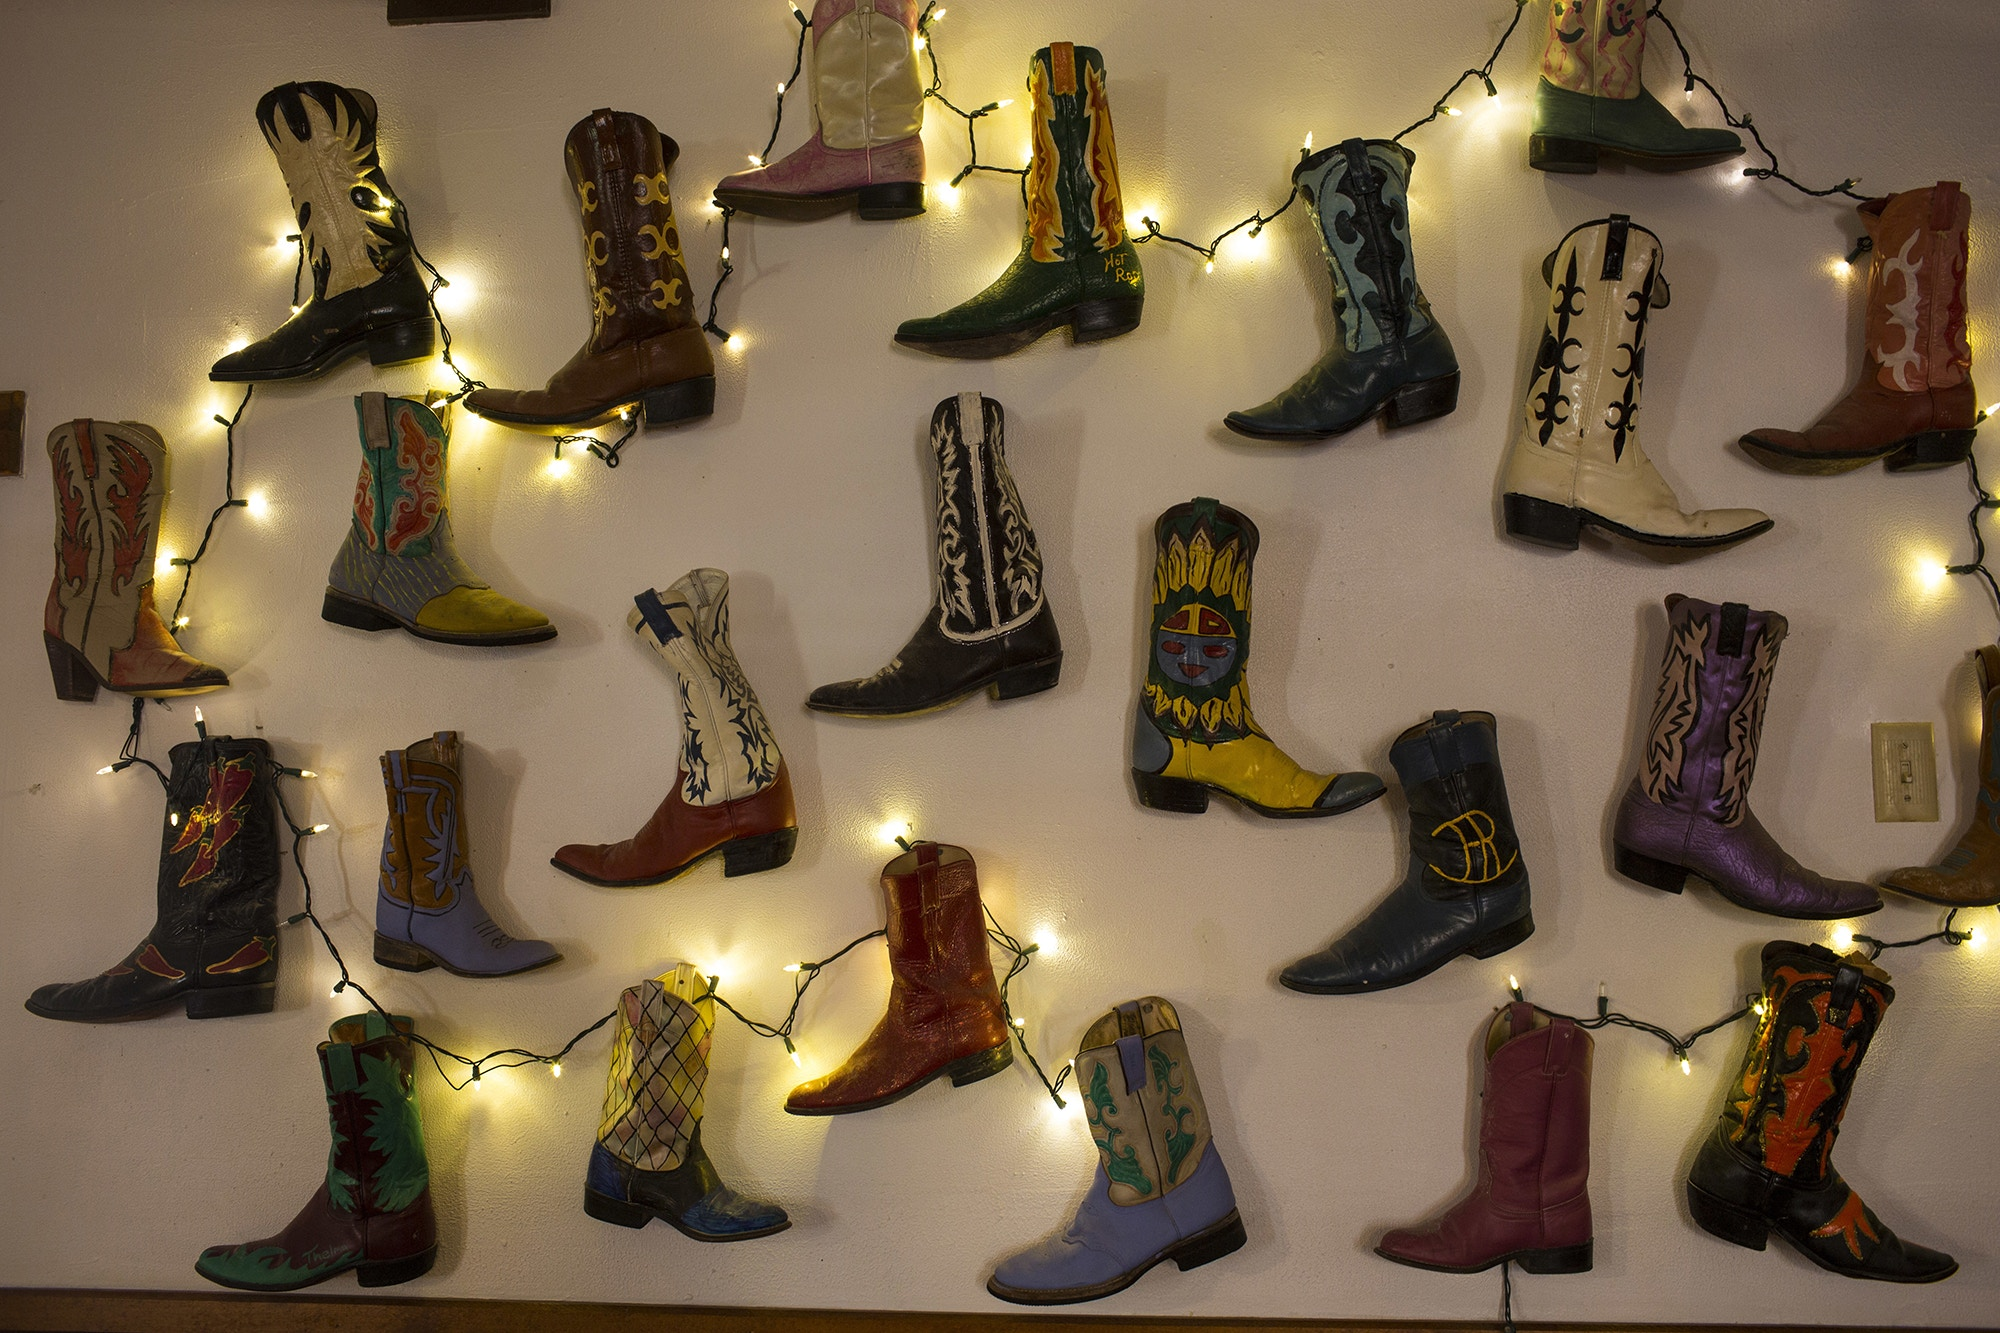 Boots decorate a wall at the Bad Rabbit Cafe in Terlingua, Texas, near the US-Mexico border, Monday, March 27, 2017. (AP Photo/Rodrigo Abd)